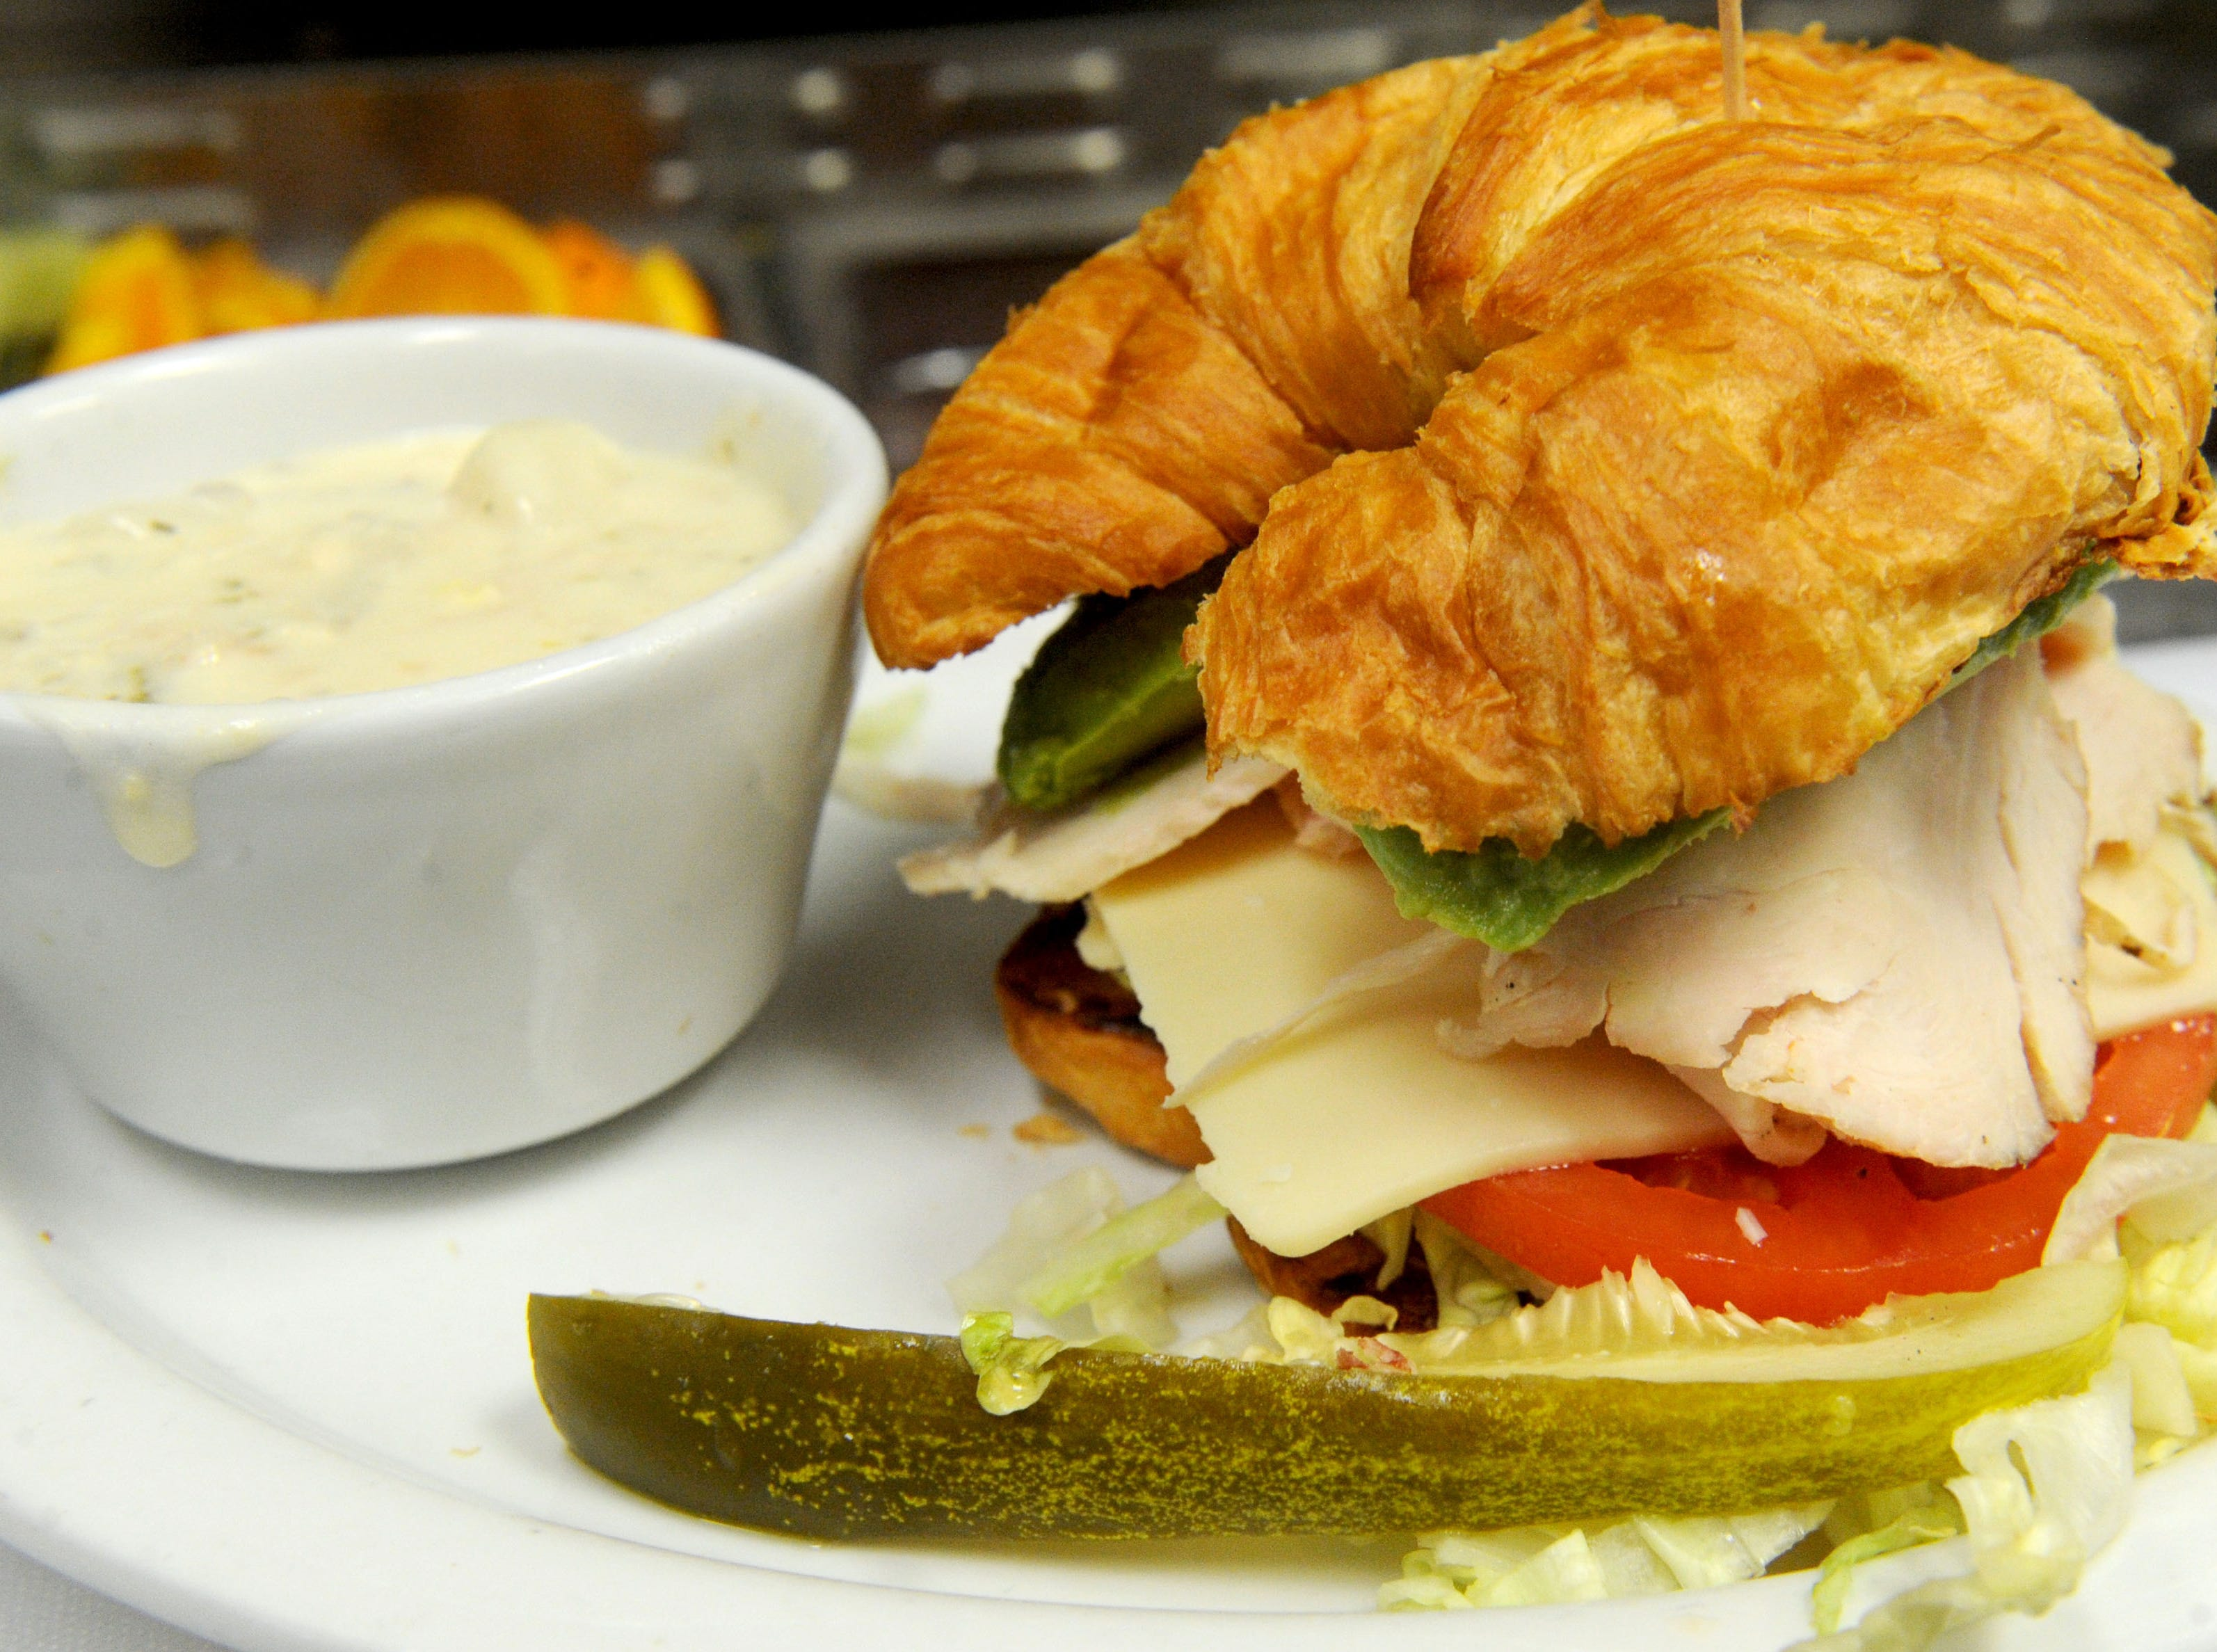 The turkey Swiss croissant sandwich at Jessica's Cafe is one of the Camarillo restaurant's best-sellers.